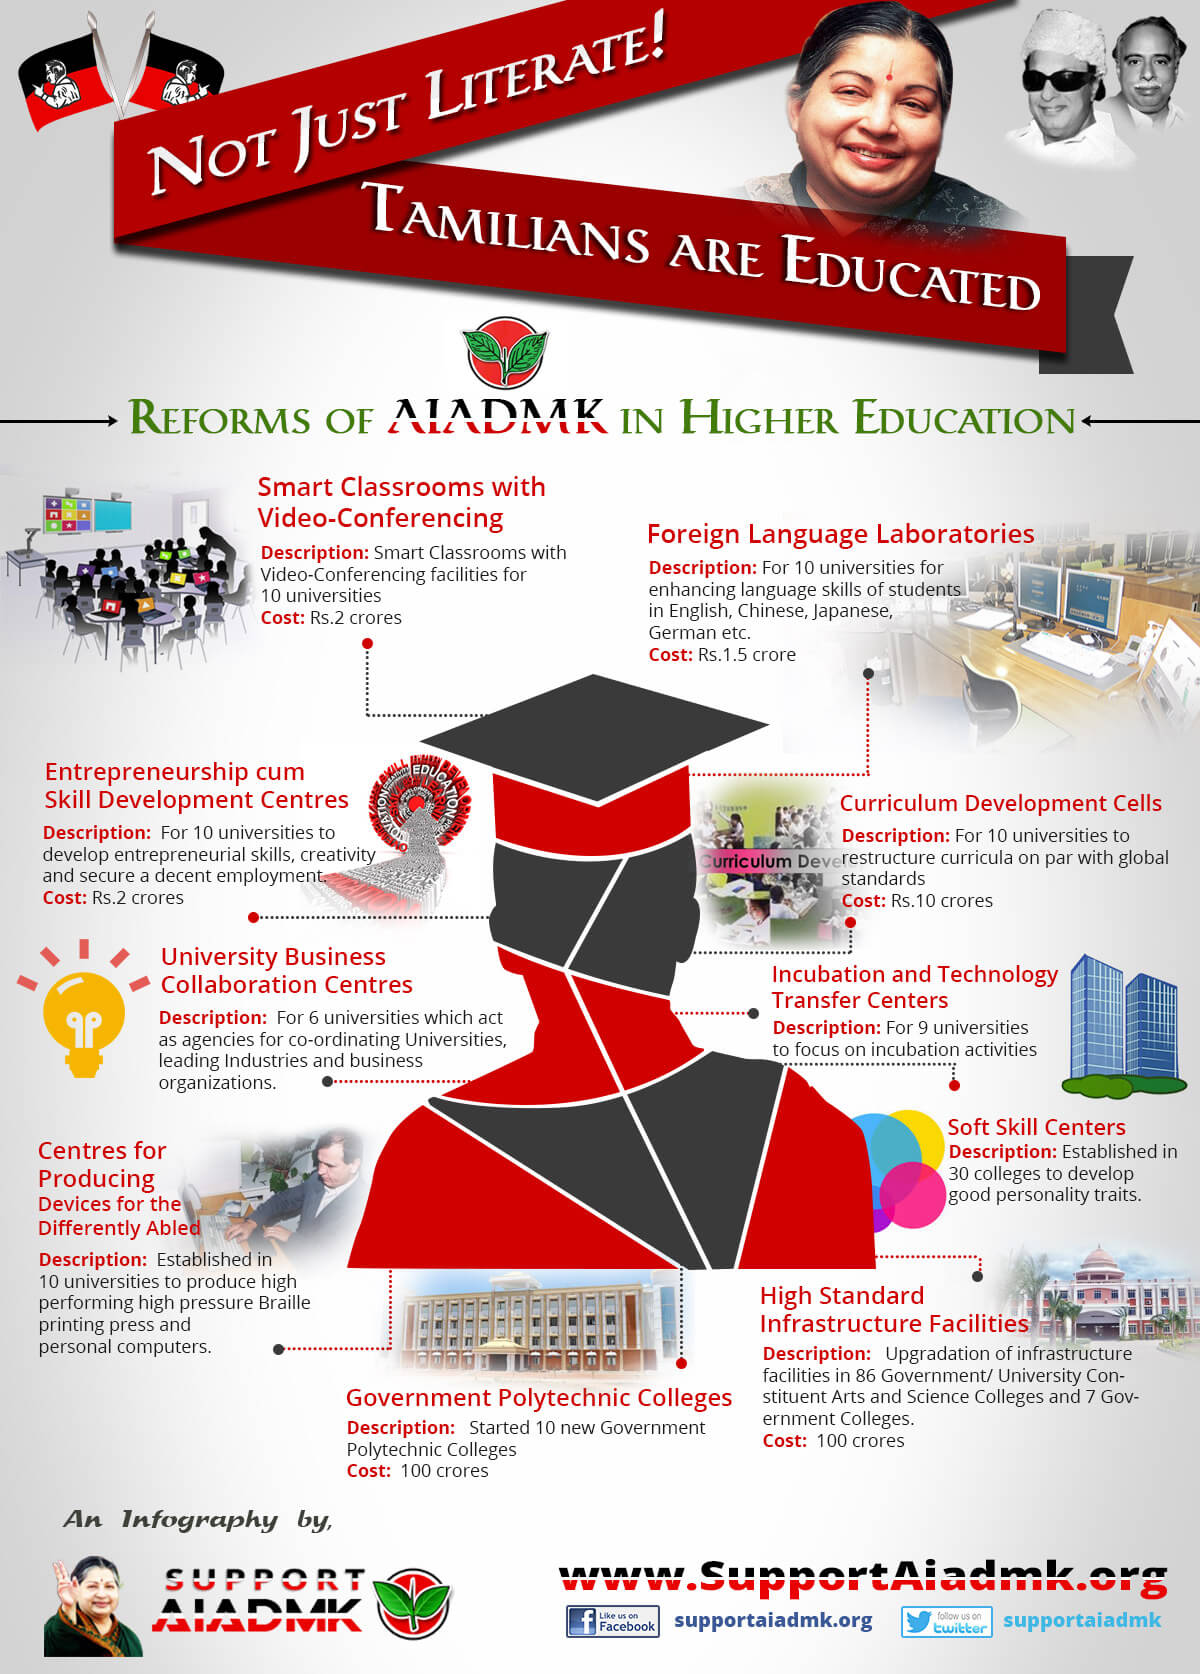 Reforms of AIADMK in Higher Education